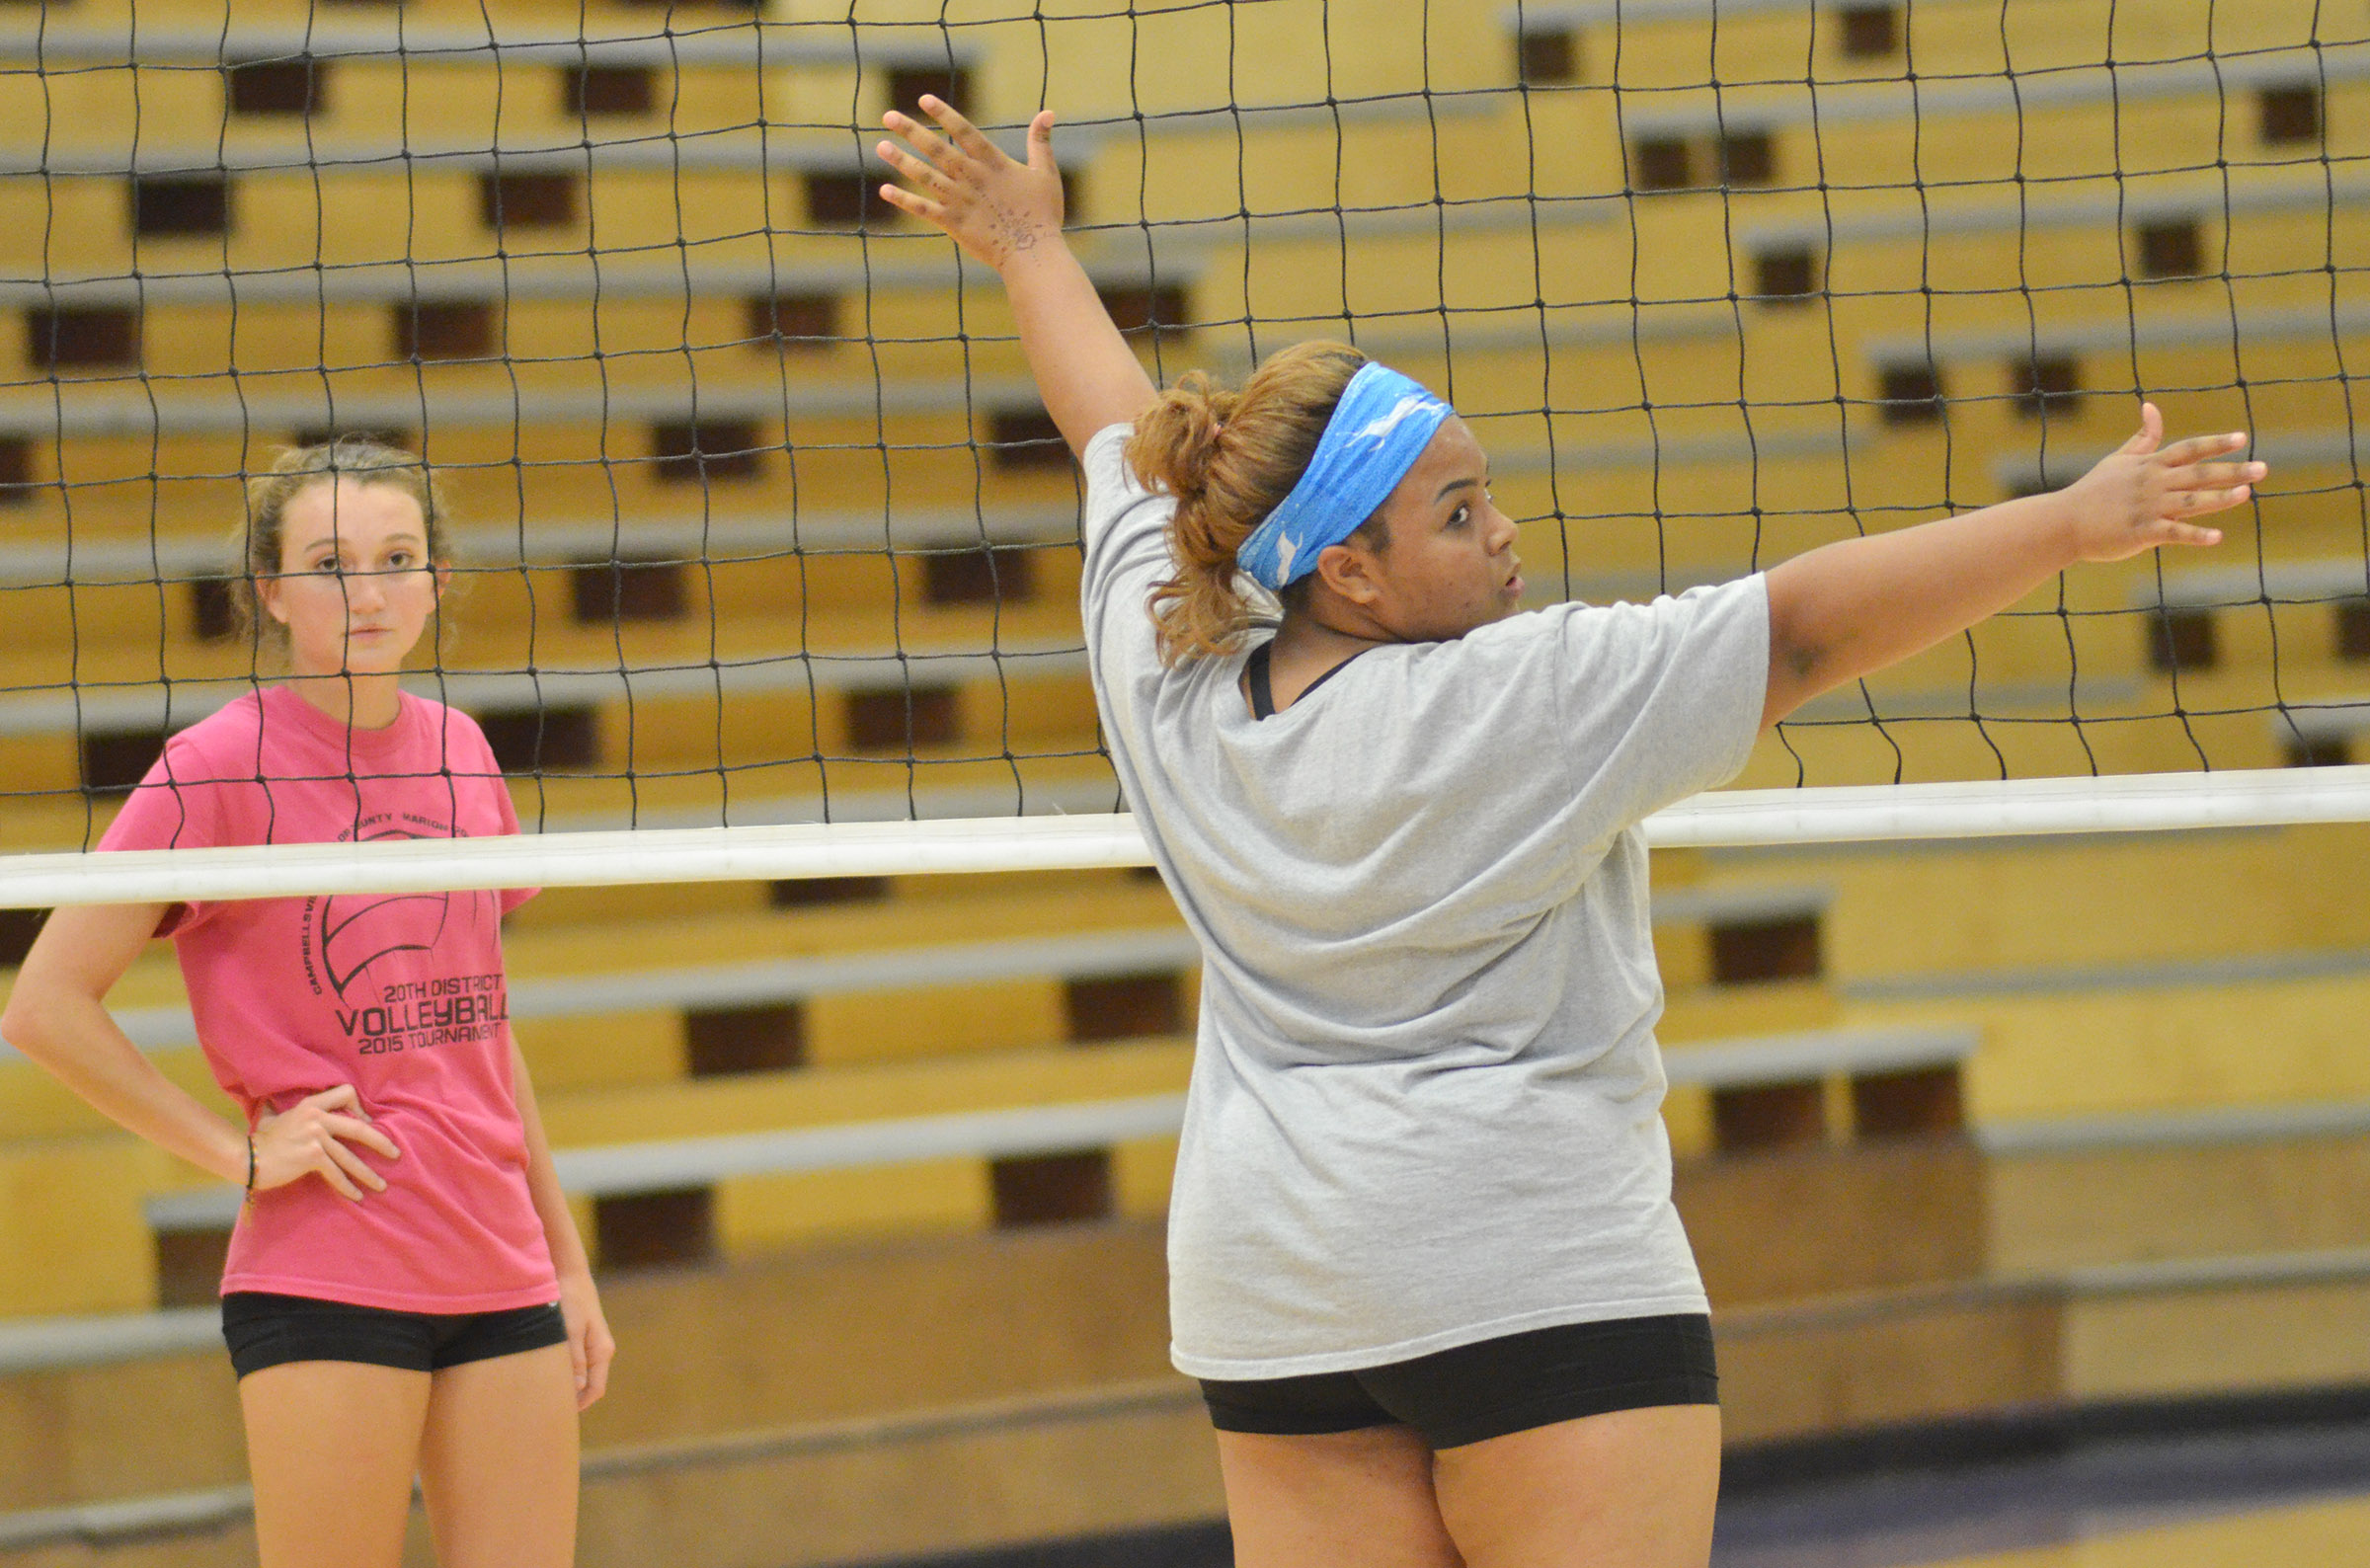 CHS juniors Salena Ritchie, at left, and Natalie Caldwell get ready for the serve.